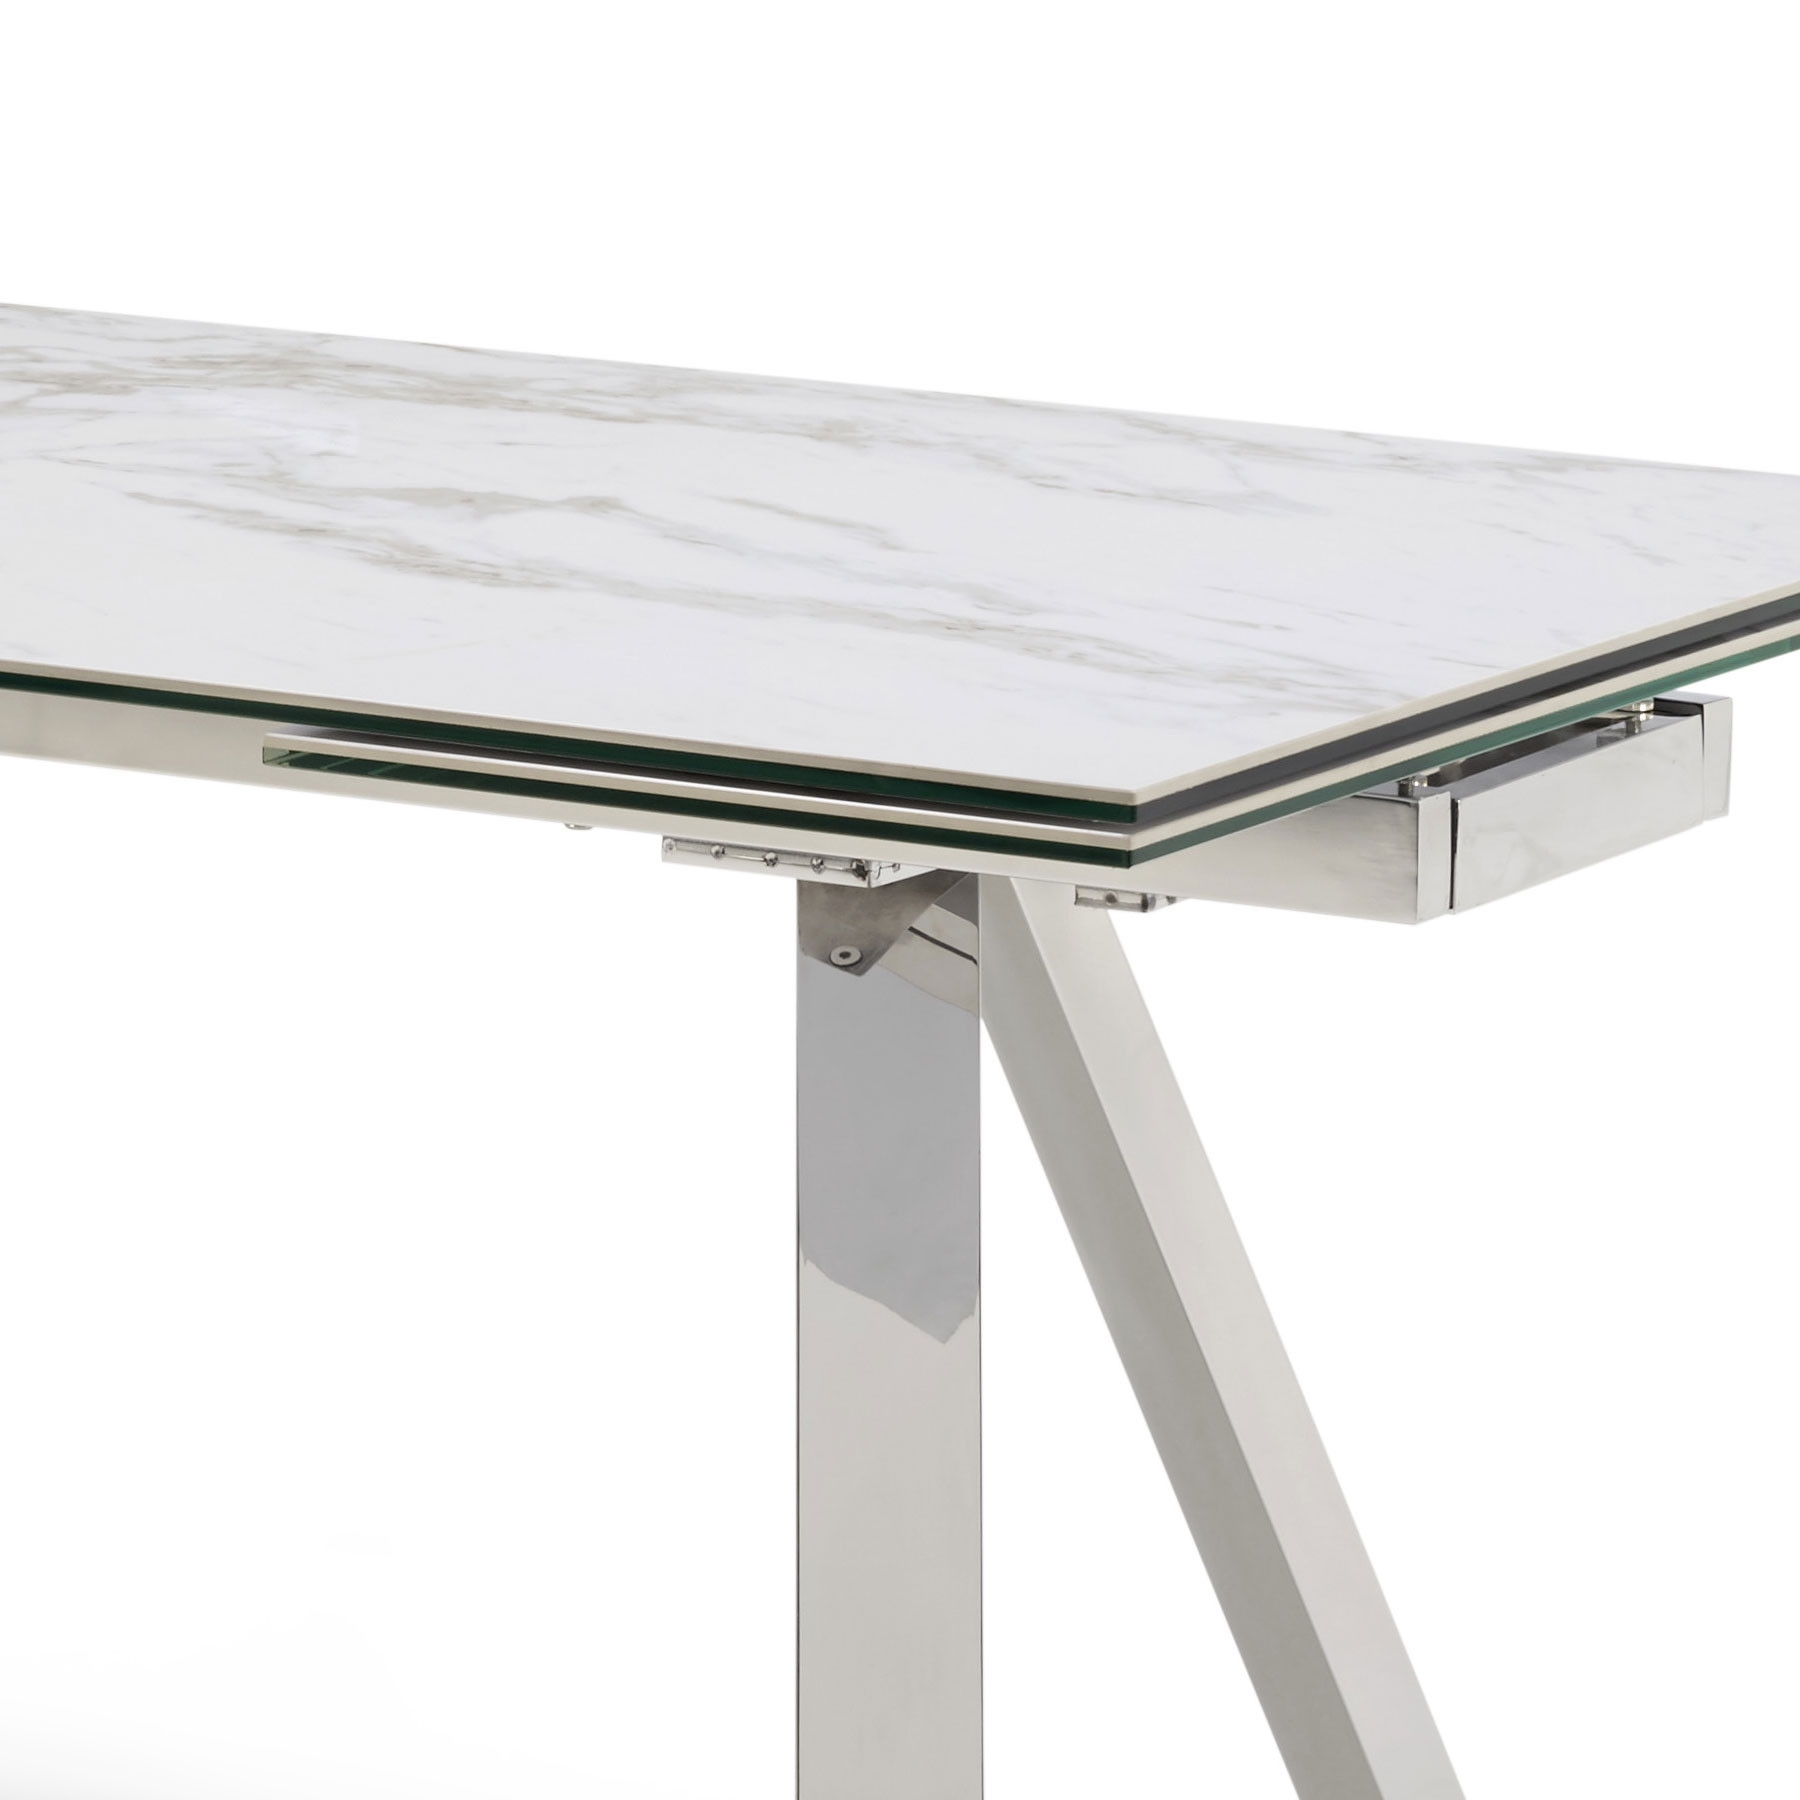 Most Popular Extending Marble Dining Tables Pertaining To Ravenna Ceramic Marble Extending Dining Table & 6 Camber Grey Chairs (View 17 of 25)